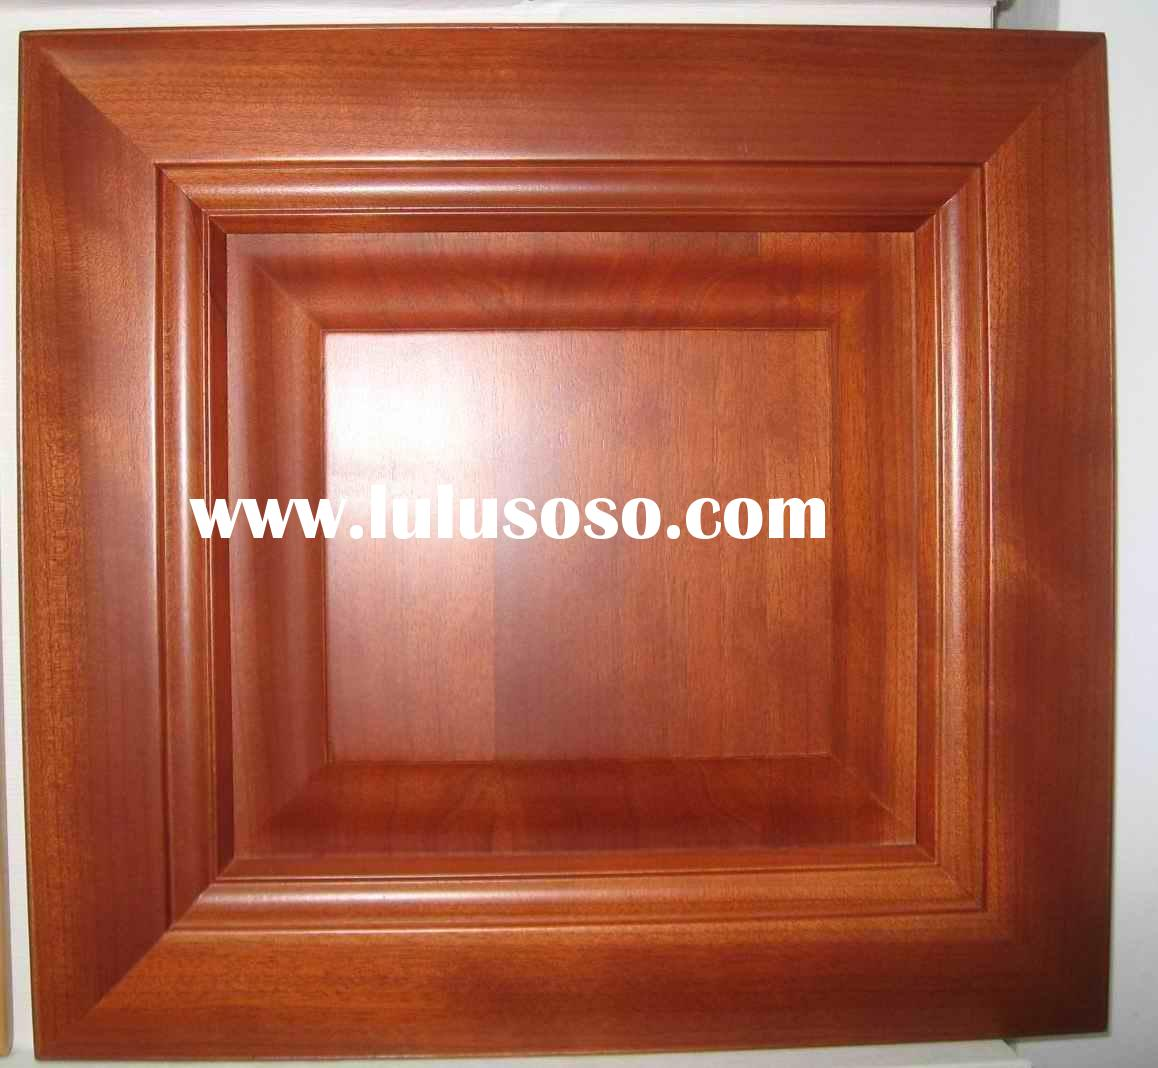 Kitchen Cabinets Doors For Sale: Solid Wood Kitchen Cabinet Door For Sale